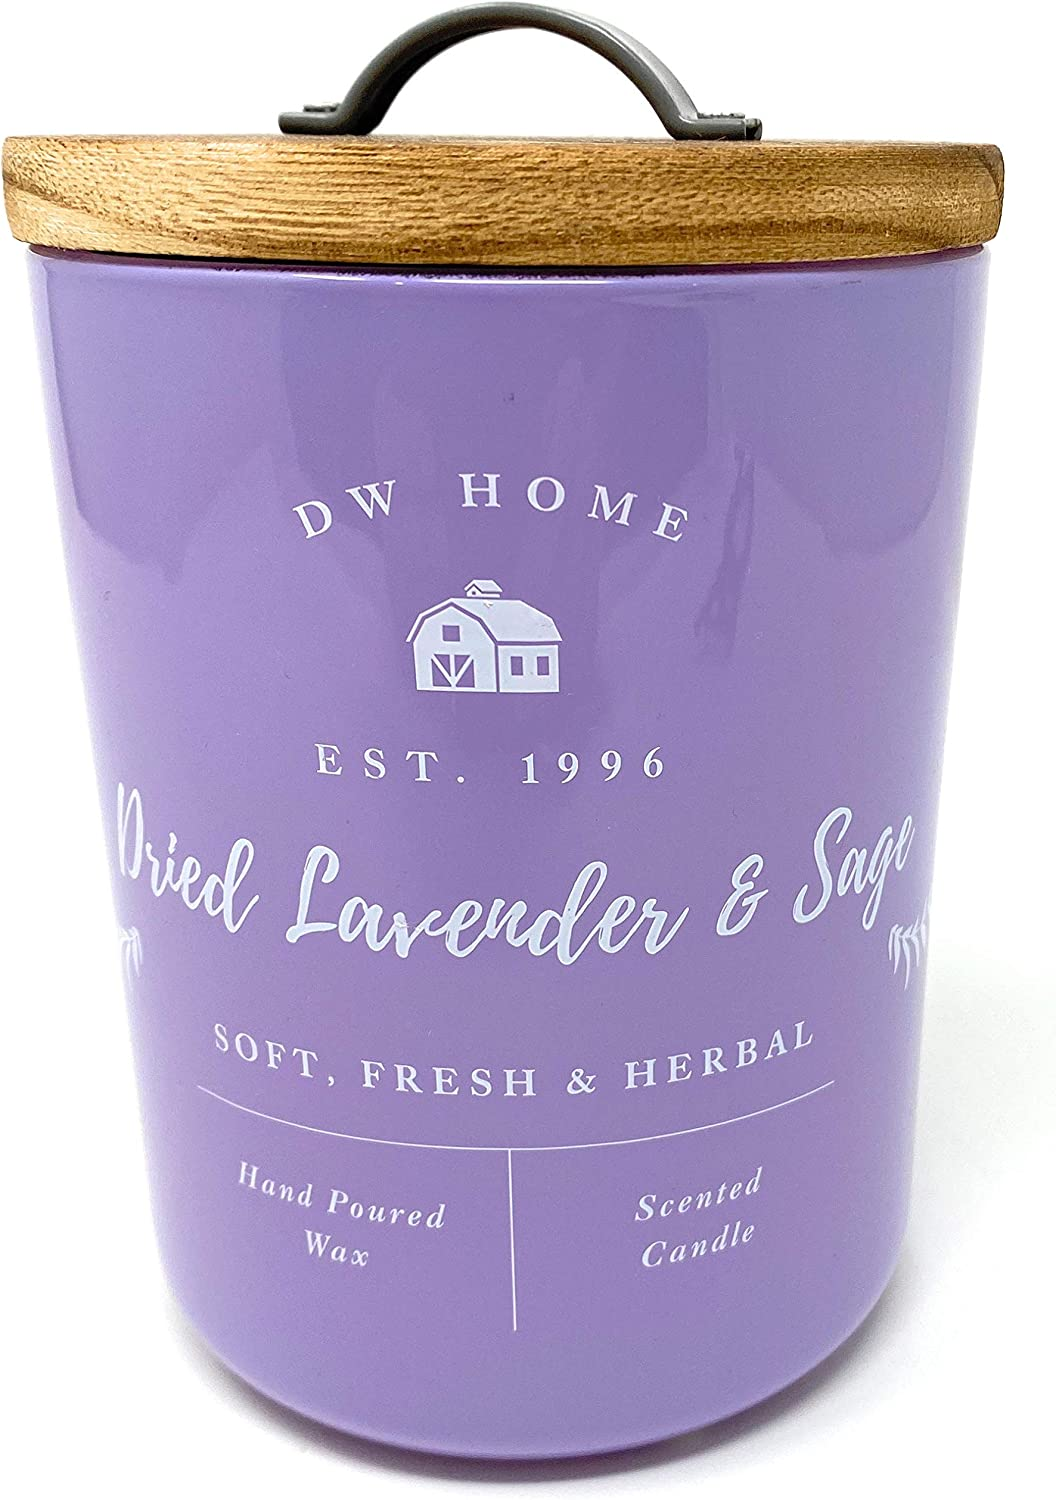 DW Home Dried Lavender & SAGE Large Candle 15.1 Ounce